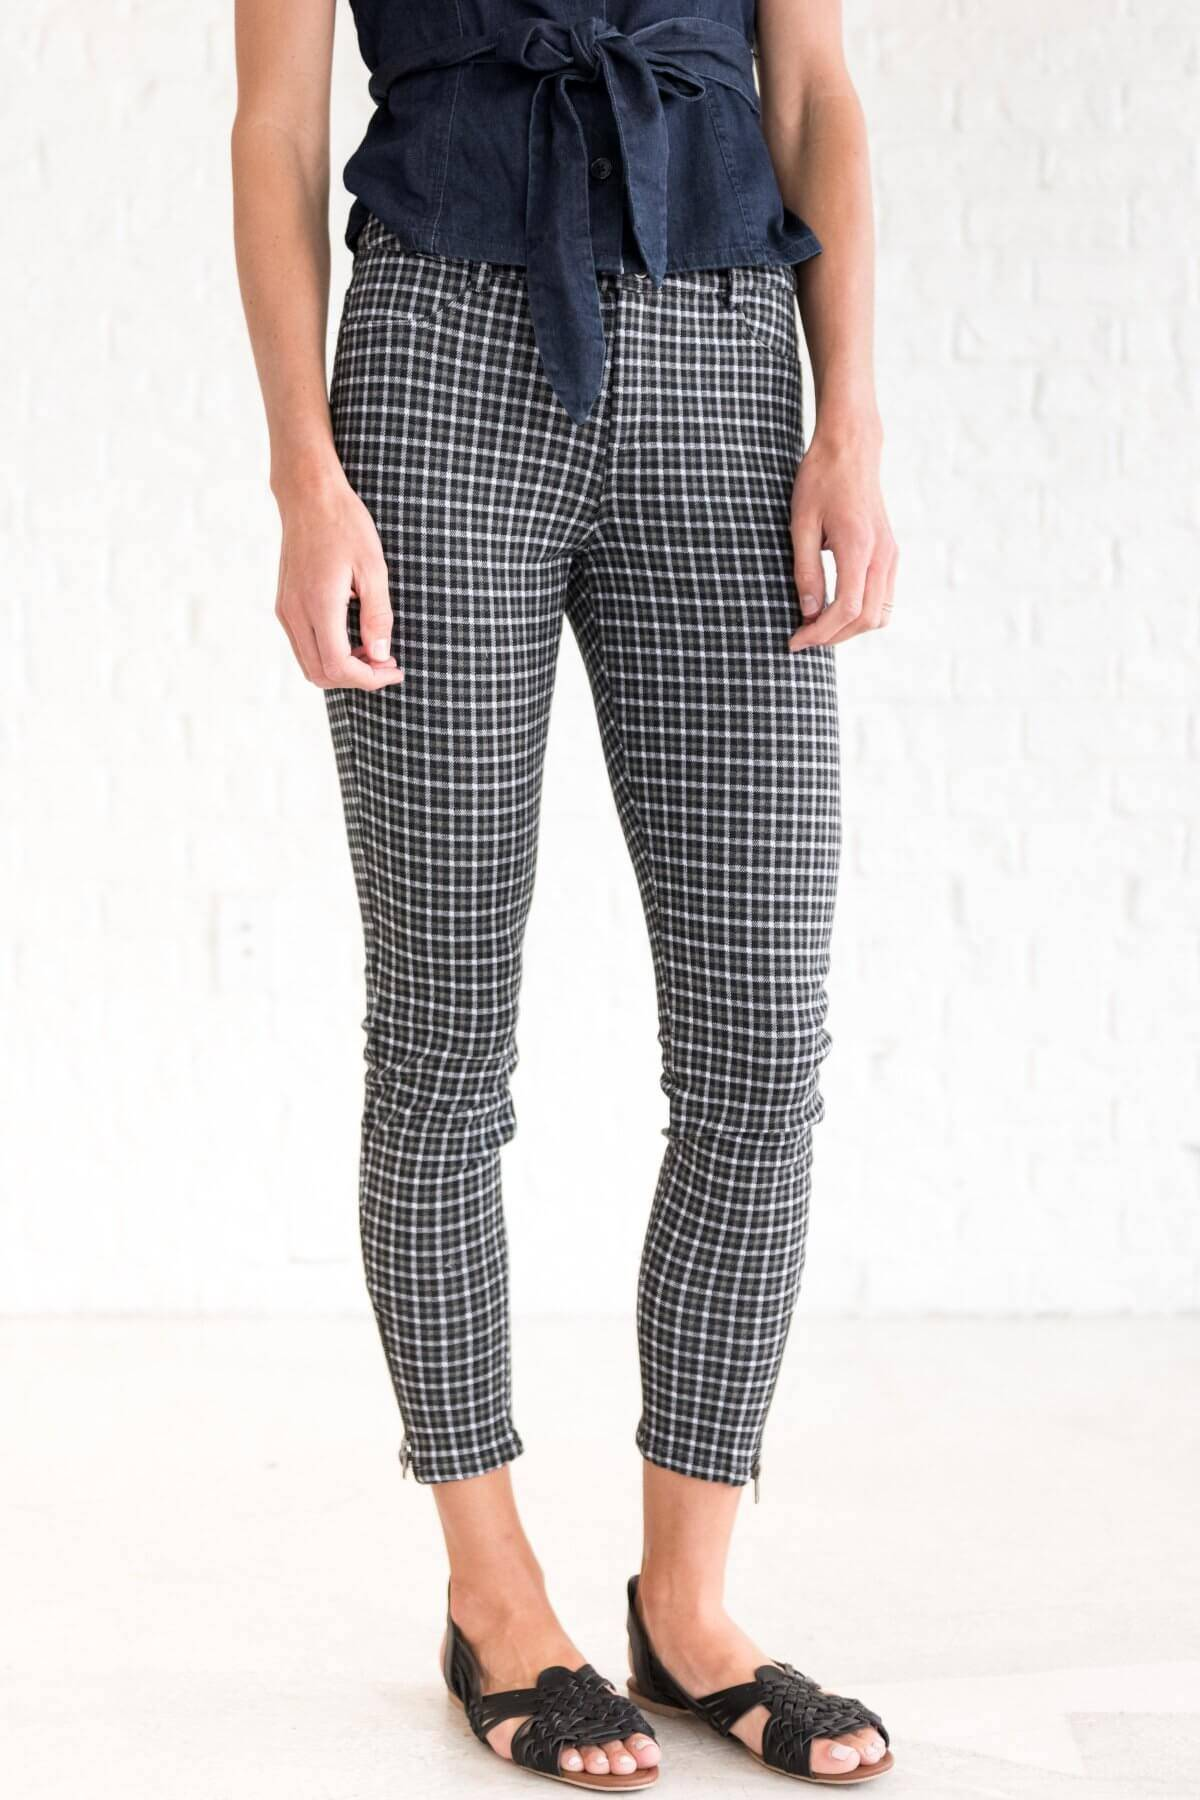 Forest Olive Green Black White Plaid Pants